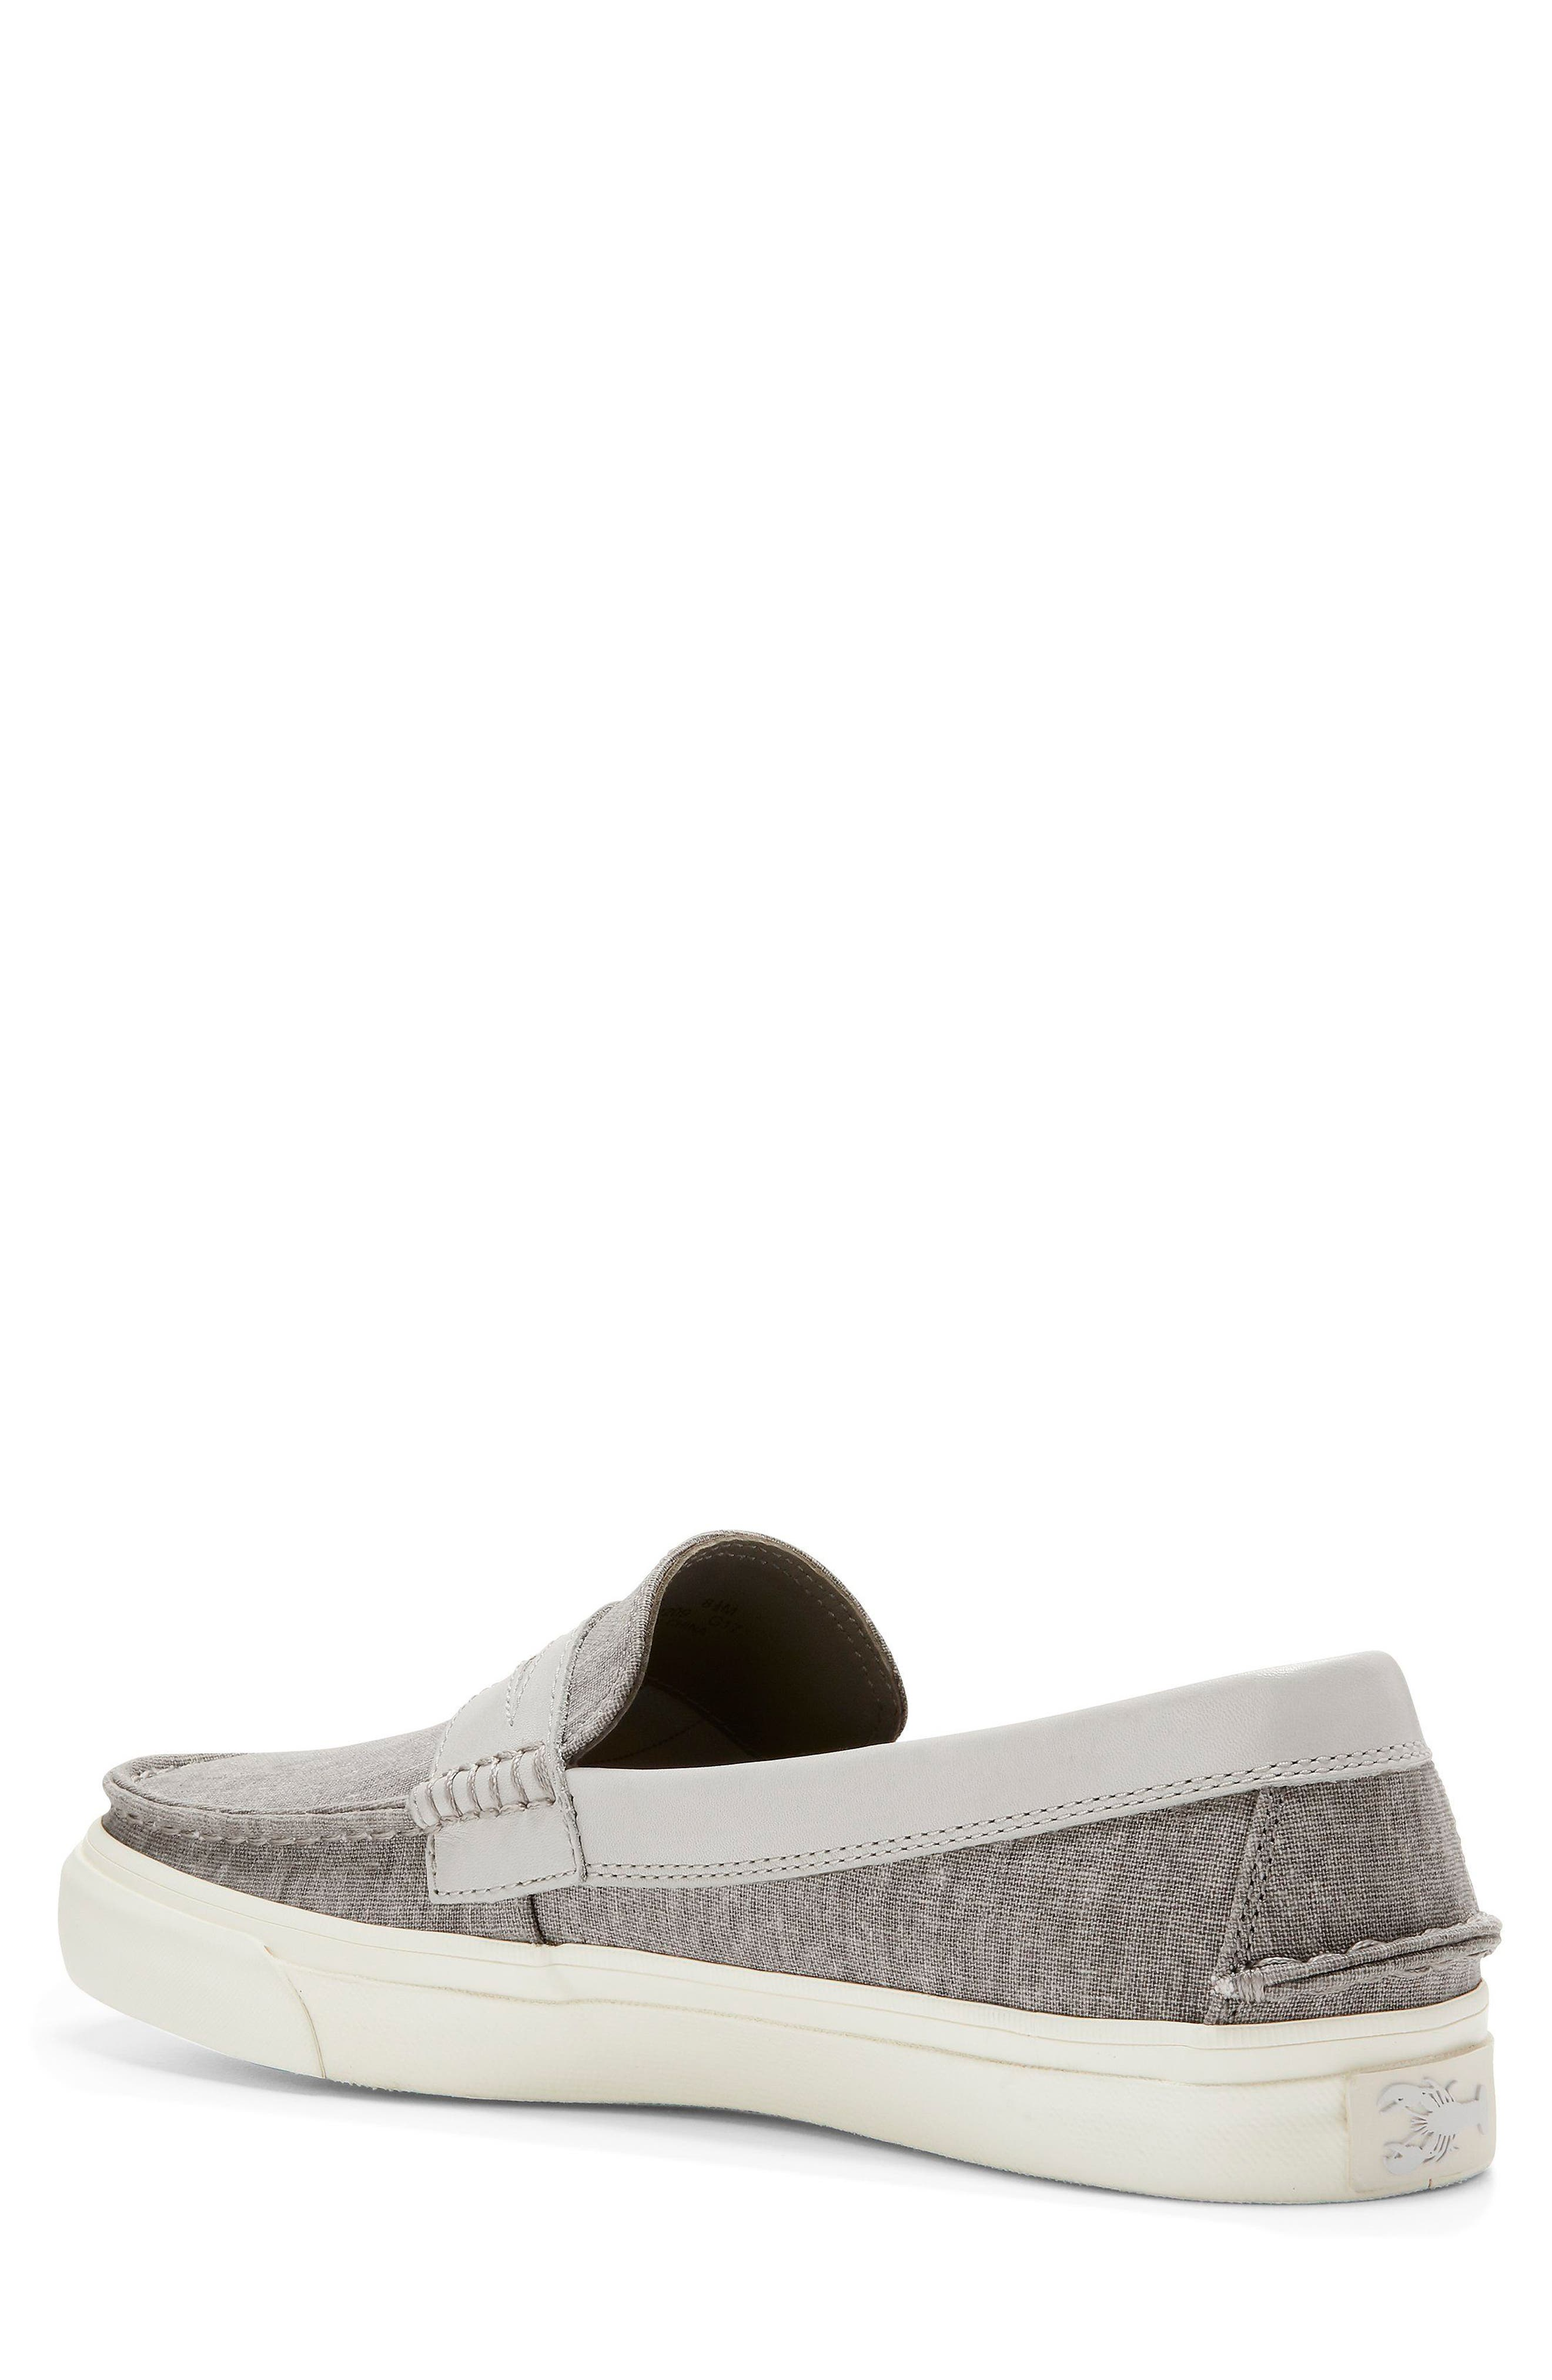 Pinch Weekend LX Penny Loafer,                             Alternate thumbnail 12, color,